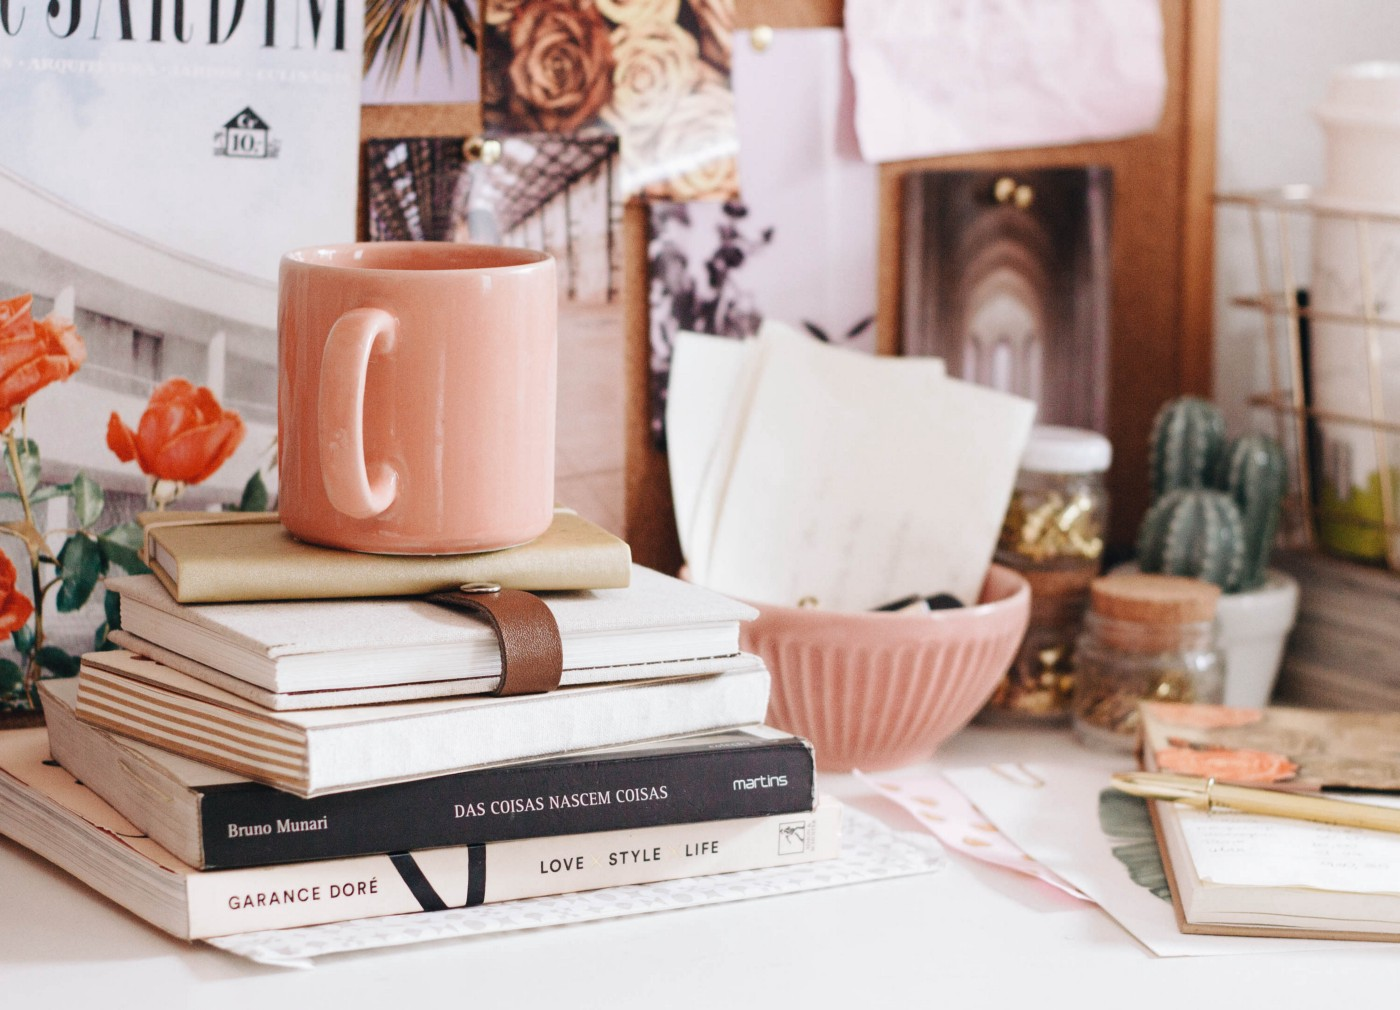 Coffee Cup sitting on books and journals on a desk. Story: I am a Writer by Rena Willis